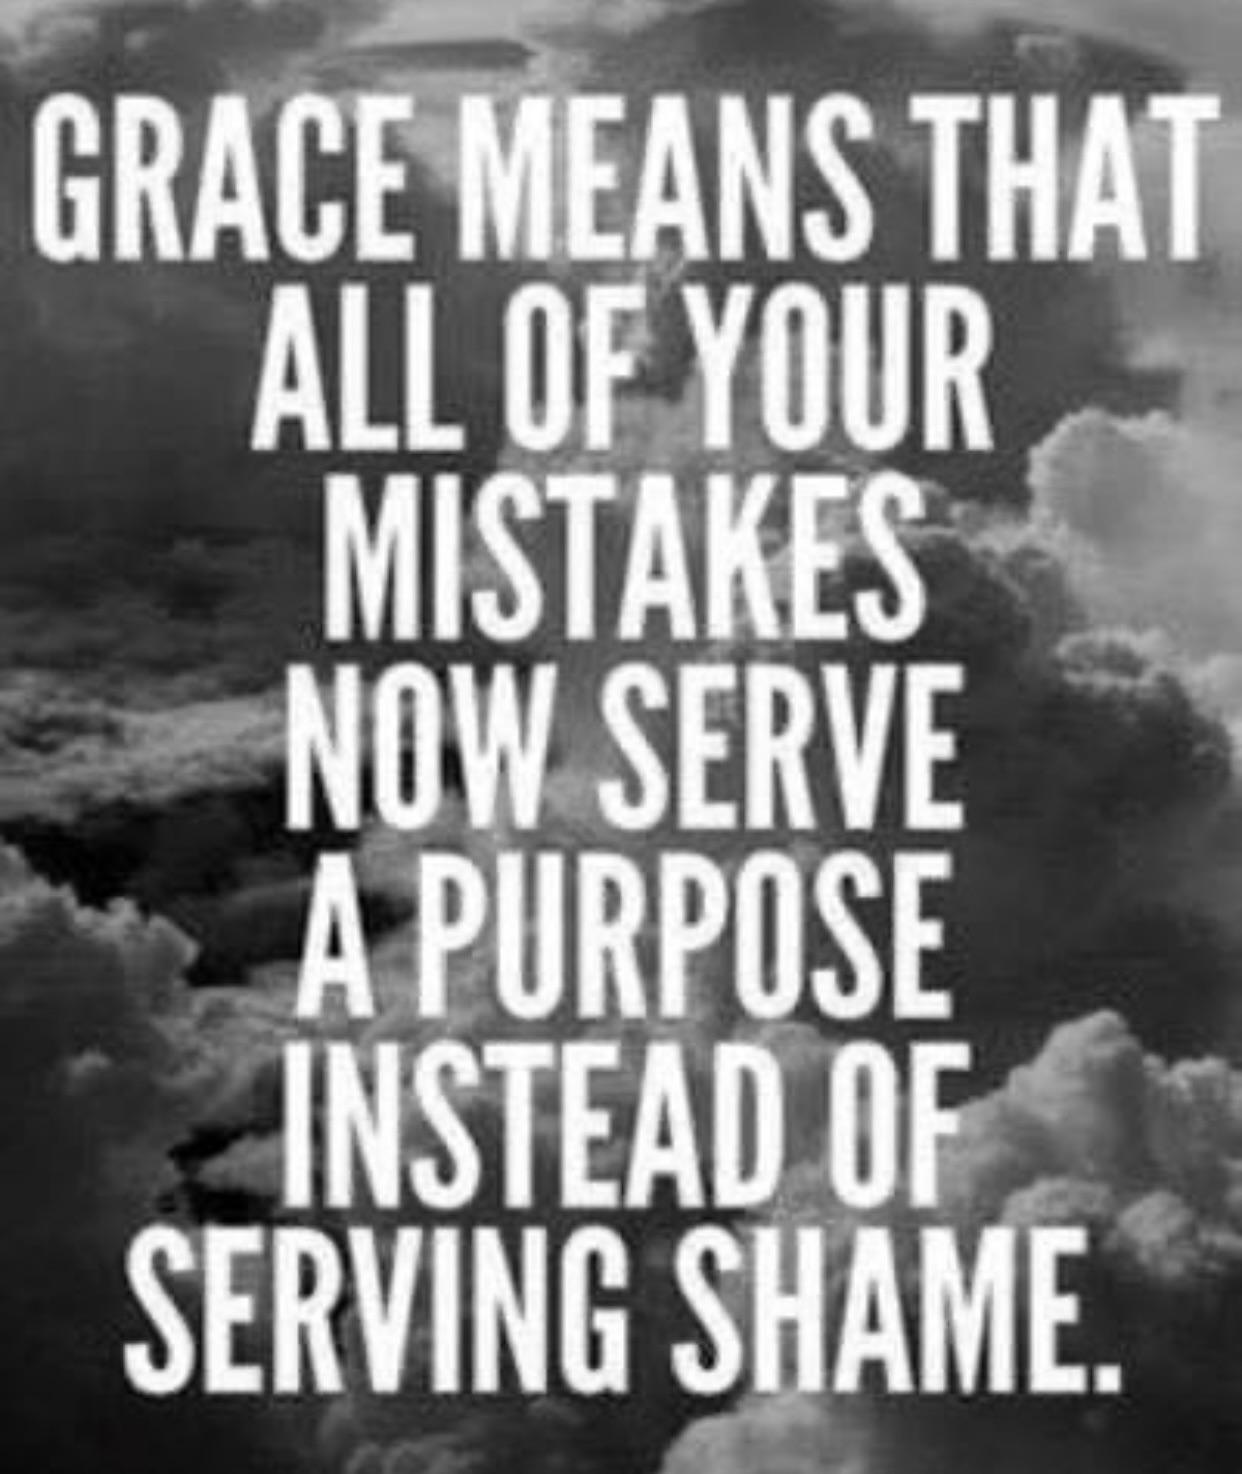 [Image] Show yourself some grace.